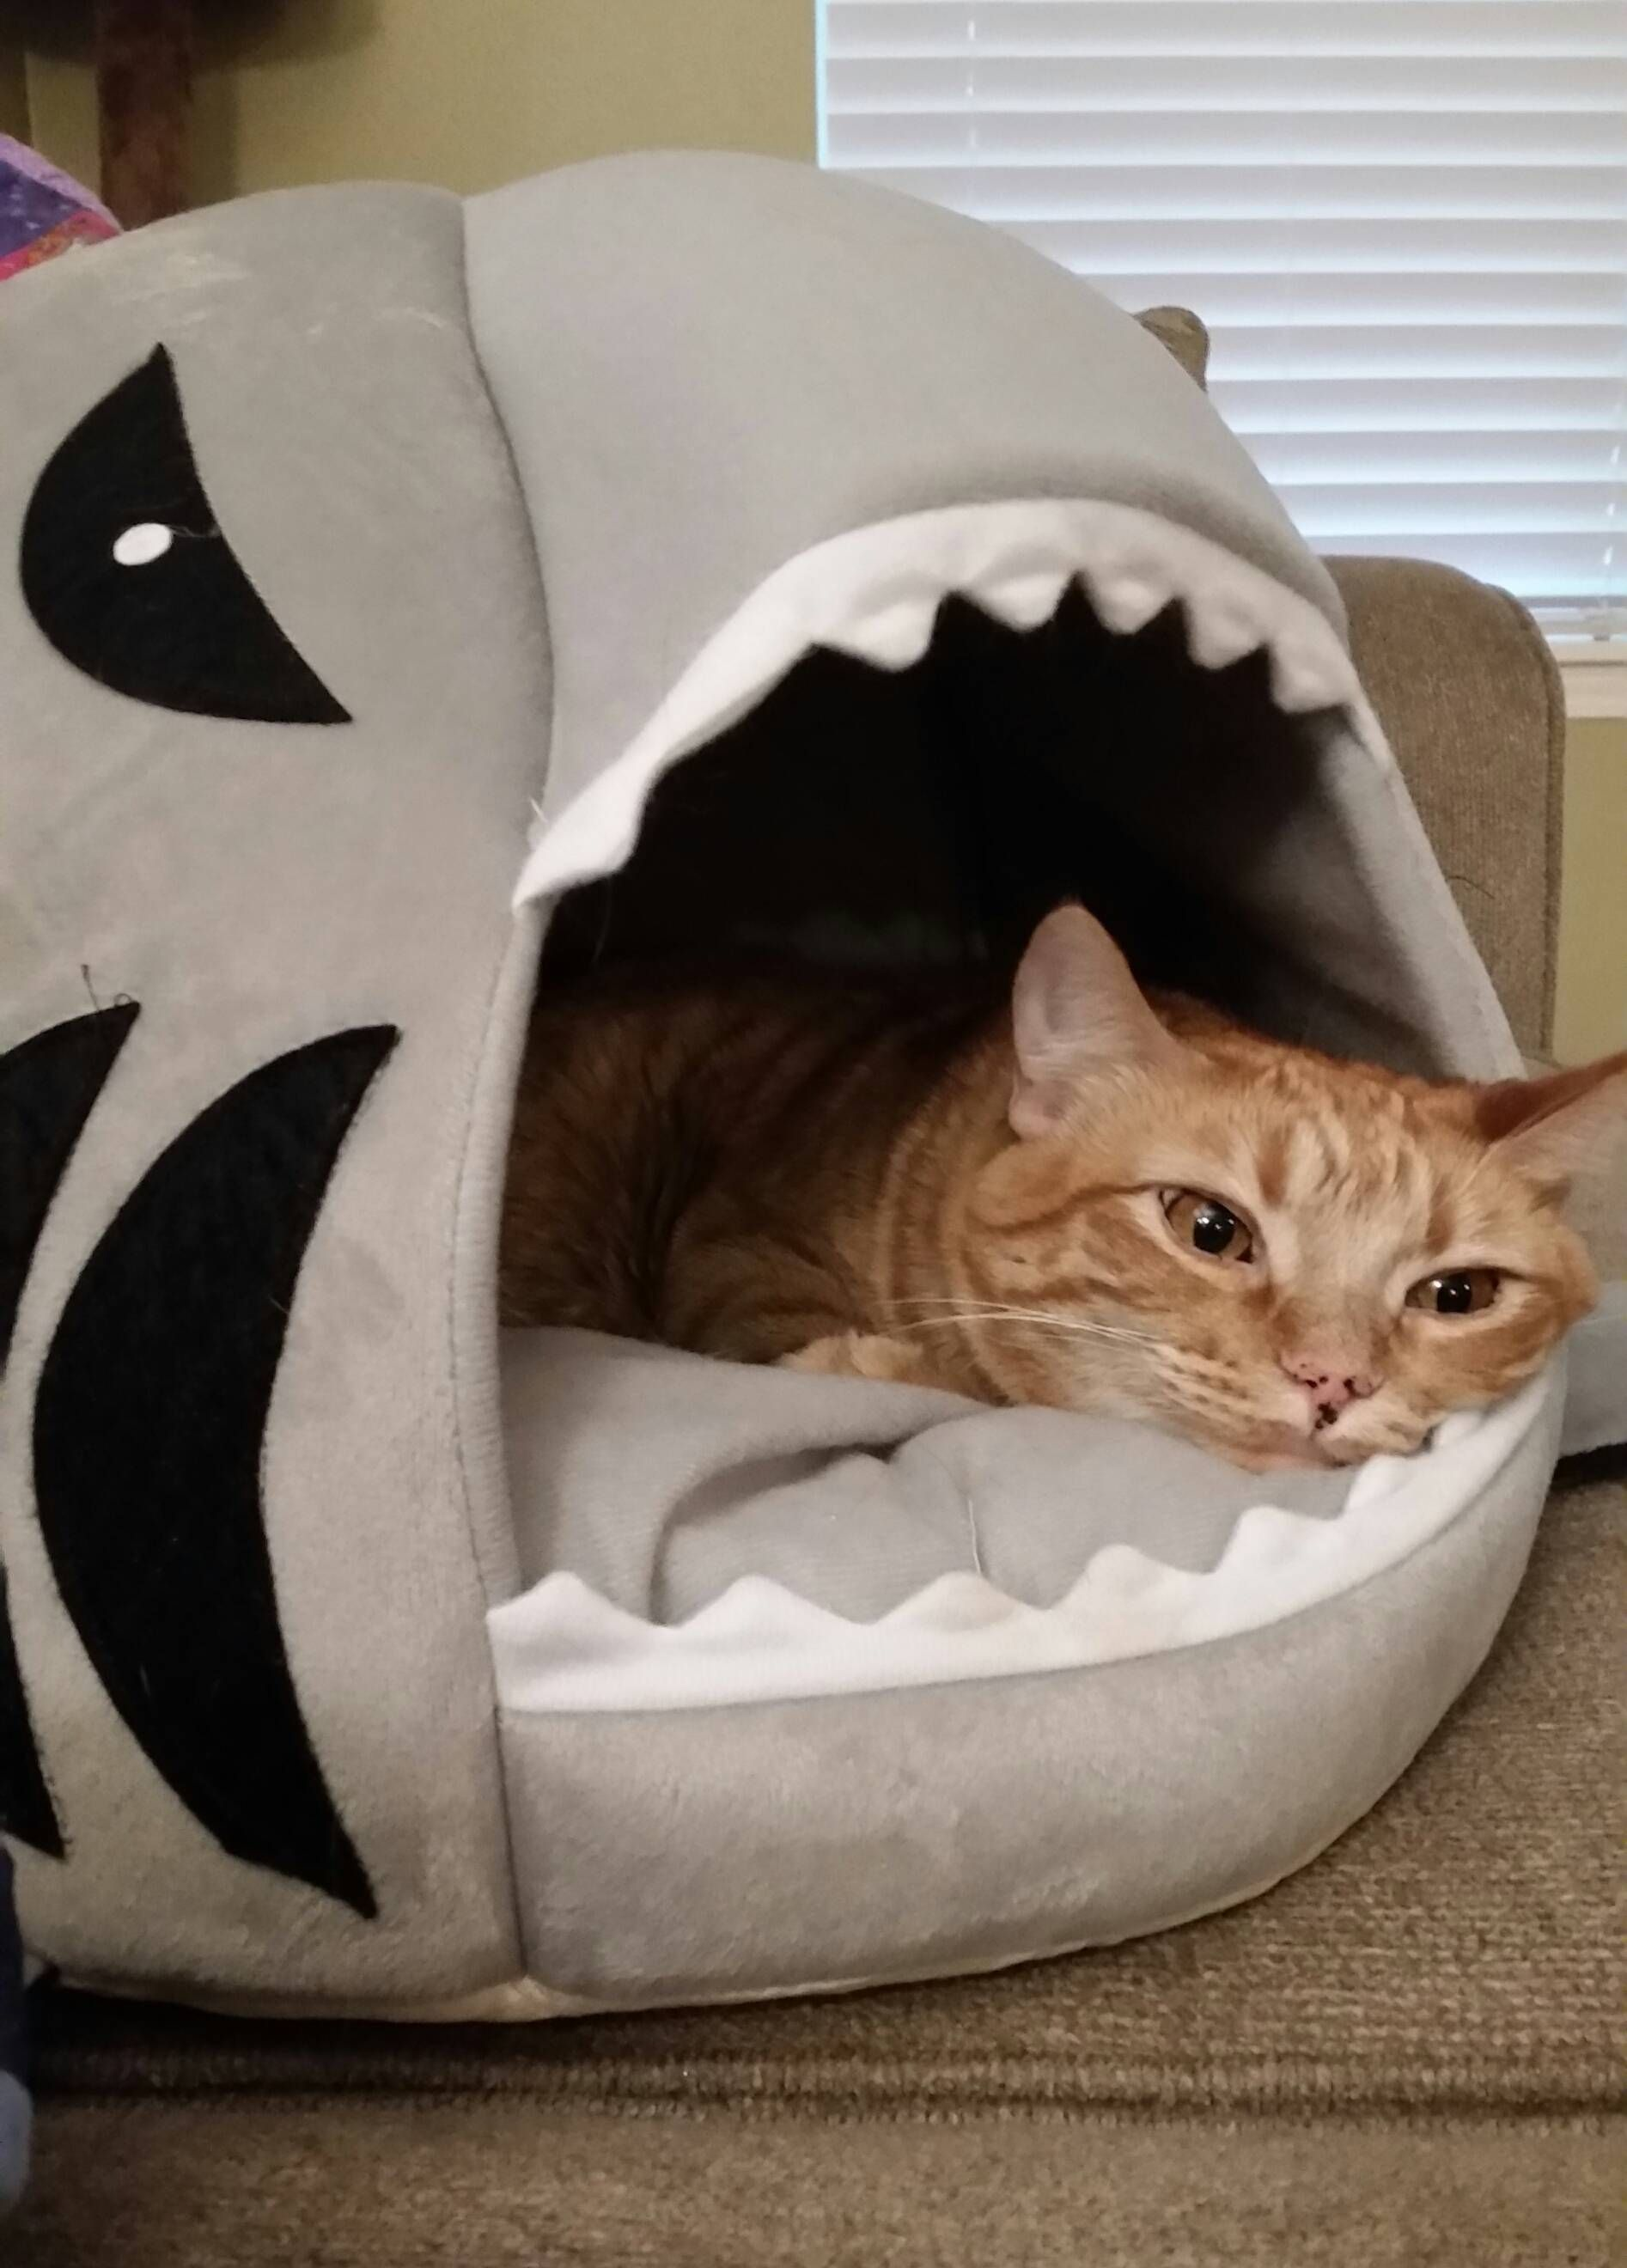 Life is rough when you have to sleep in a shark bed see